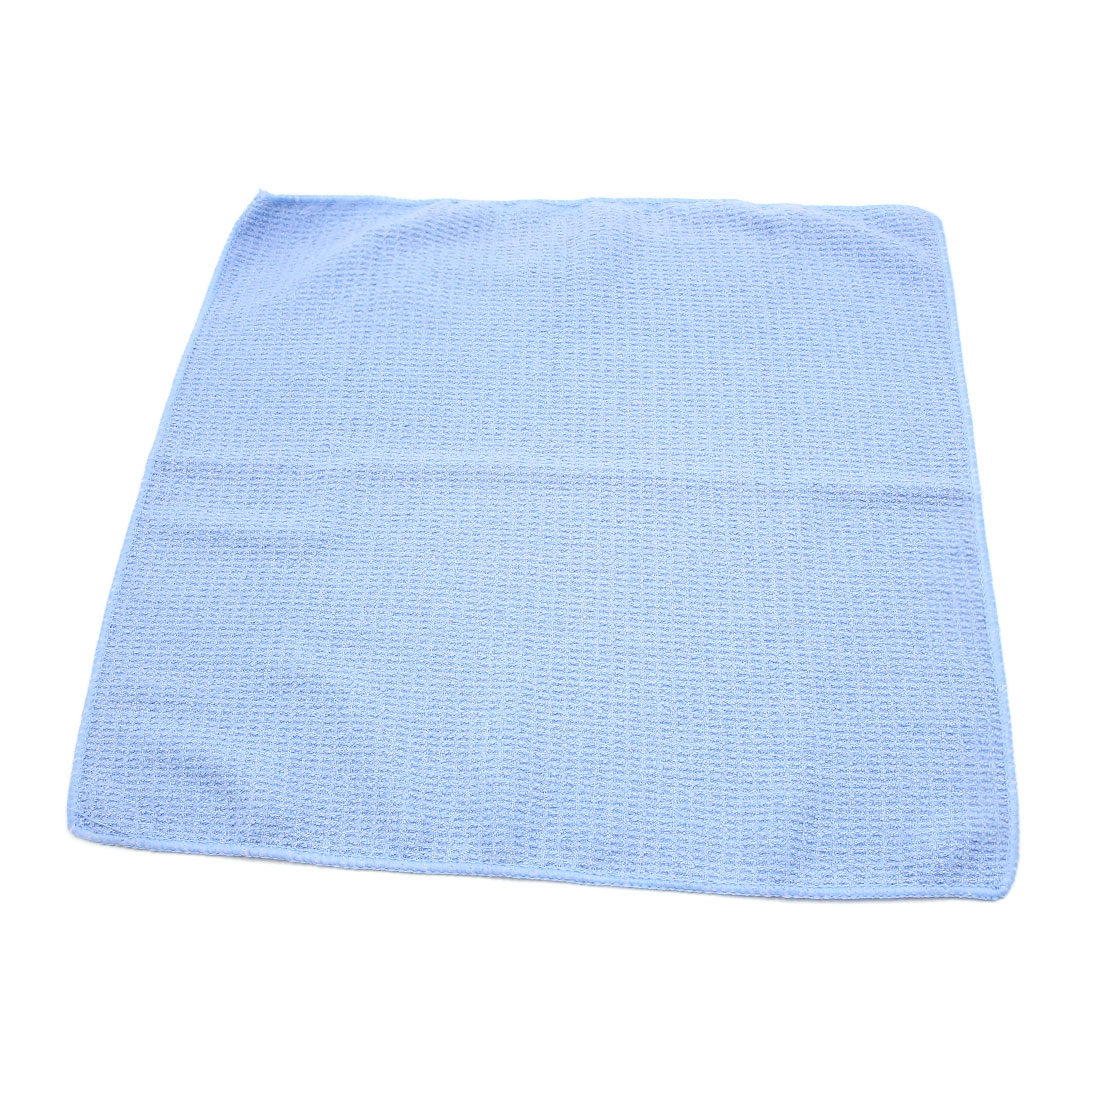 Light Blue Soft Home Auto Car Care Dry Washing Polishing Duster Cloth Towels